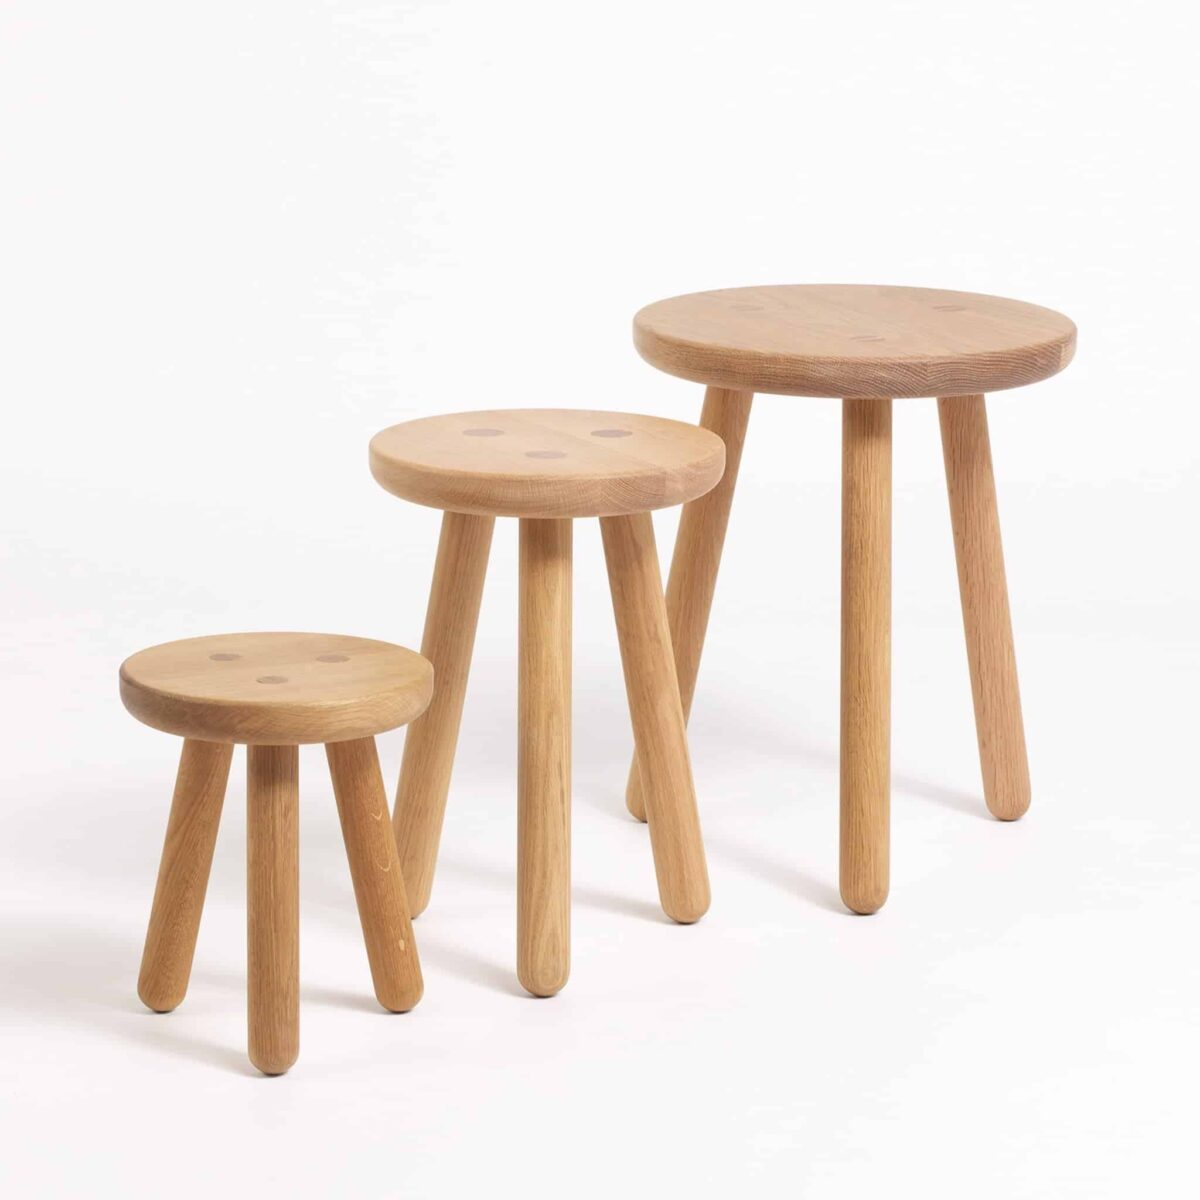 another-country-stool-one-oak-natural-002